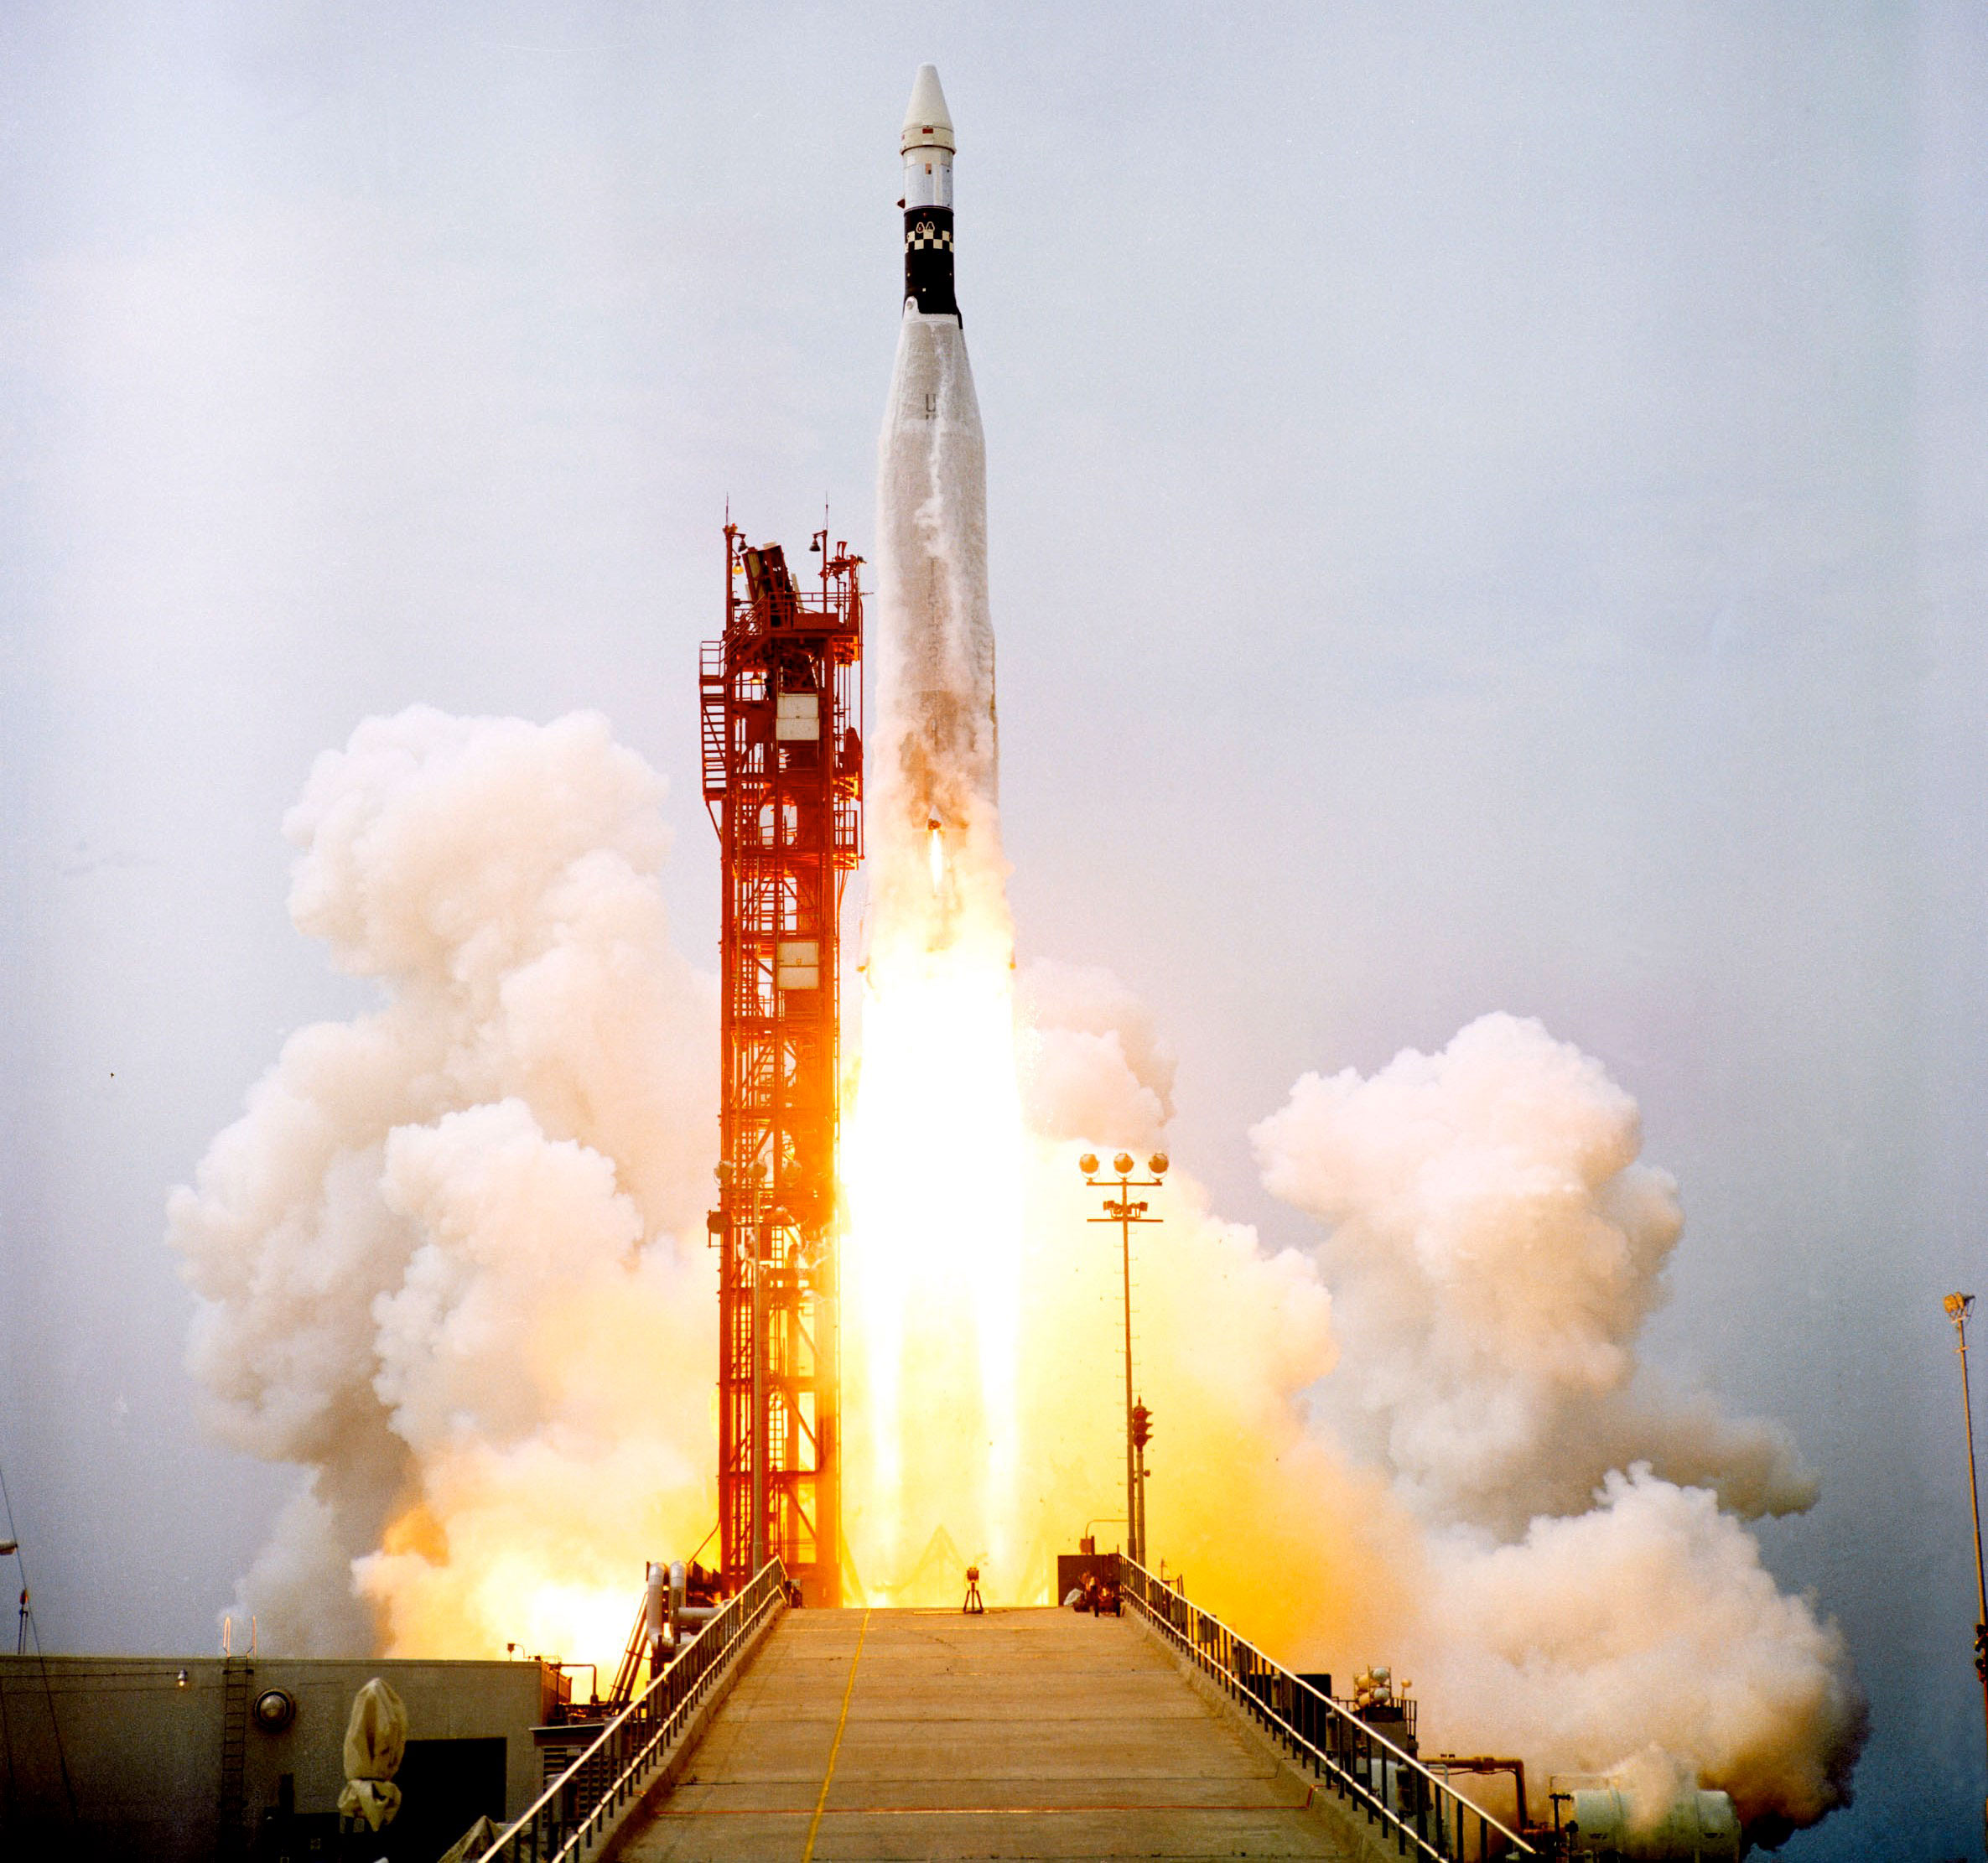 gemini 8 Gemini's mission is to advance our knowledge of the universe by providing the international gemini community with forefront access to the entire sky.